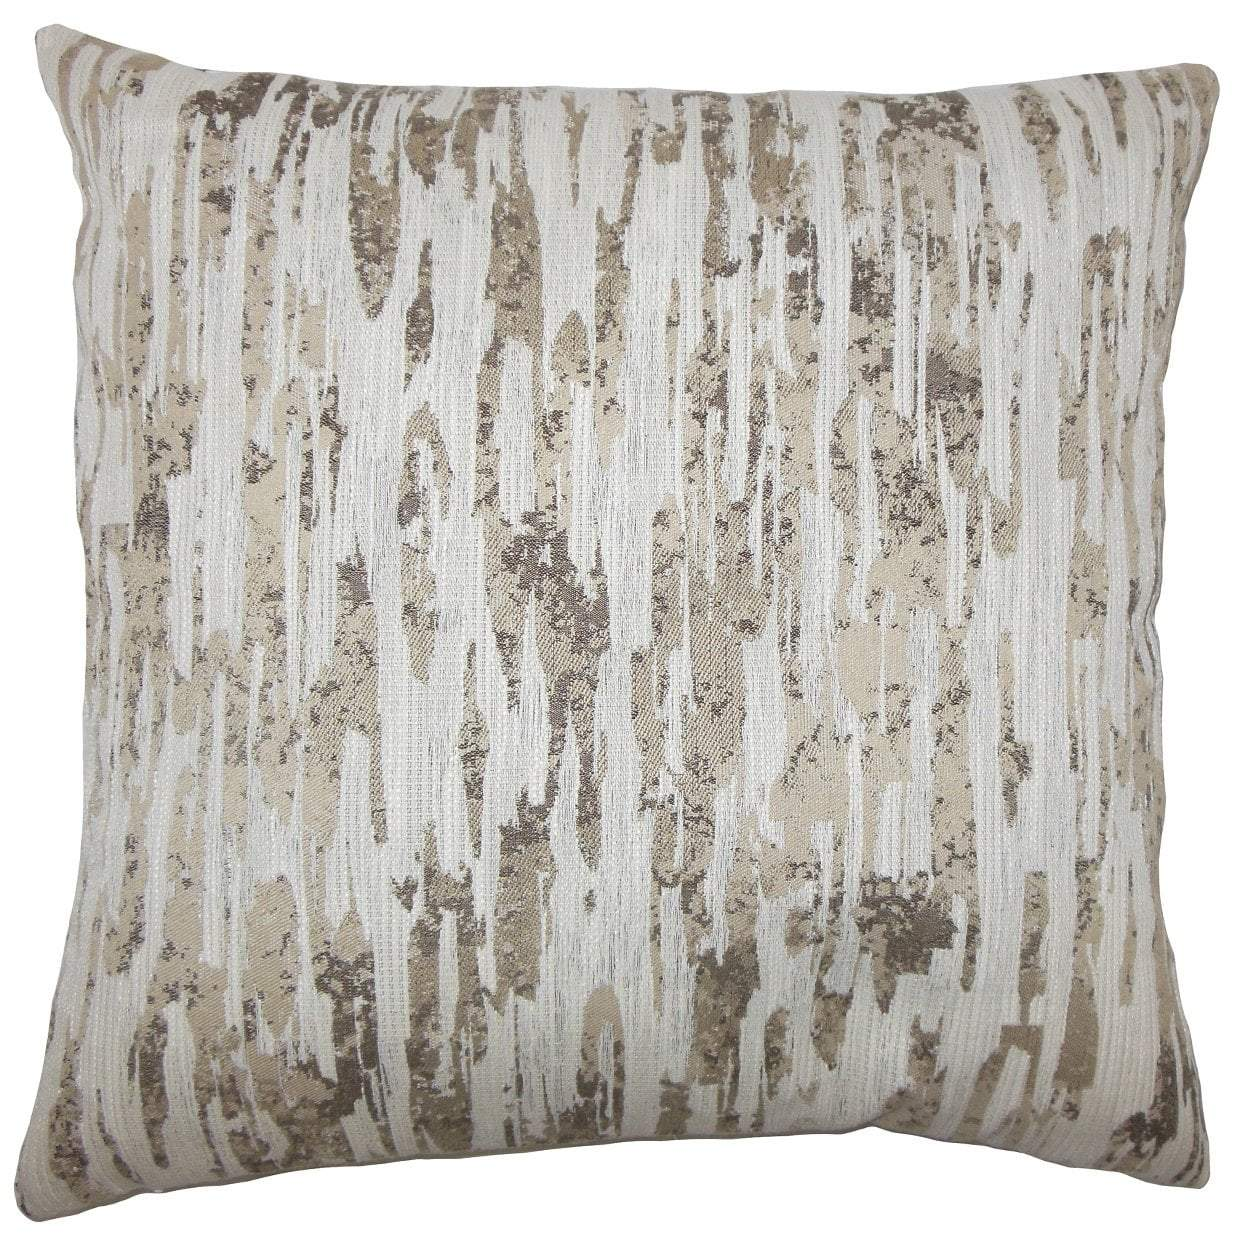 Synthetic Graphic Contemporary Throw Pillow Cover